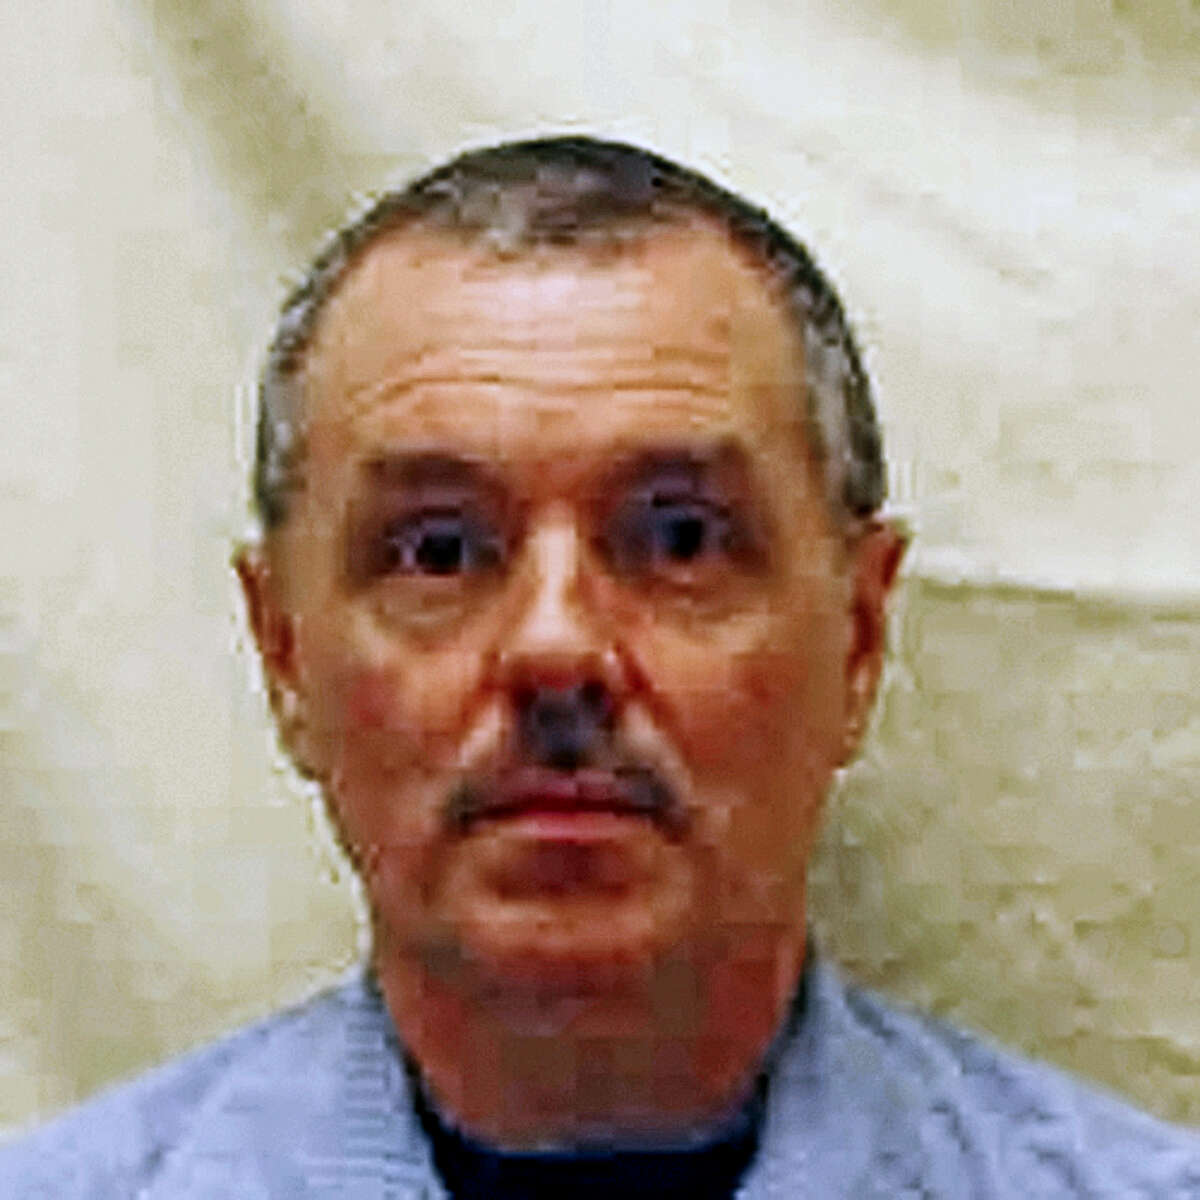 """This photo provided by the Ohio Department of Rehabilitation and Correction shows Donald Harvey, a serial killer who became known as the """"Angel of Death."""" Harvey, who was serving multiple life sentences, was found beaten in his cell Tuesday, March 28, 2017, at the state's prison in Toledo, state officials said. He died Thursday morning, said JoEllen Smith, spokeswoman for Ohio's prison system. He was 64."""